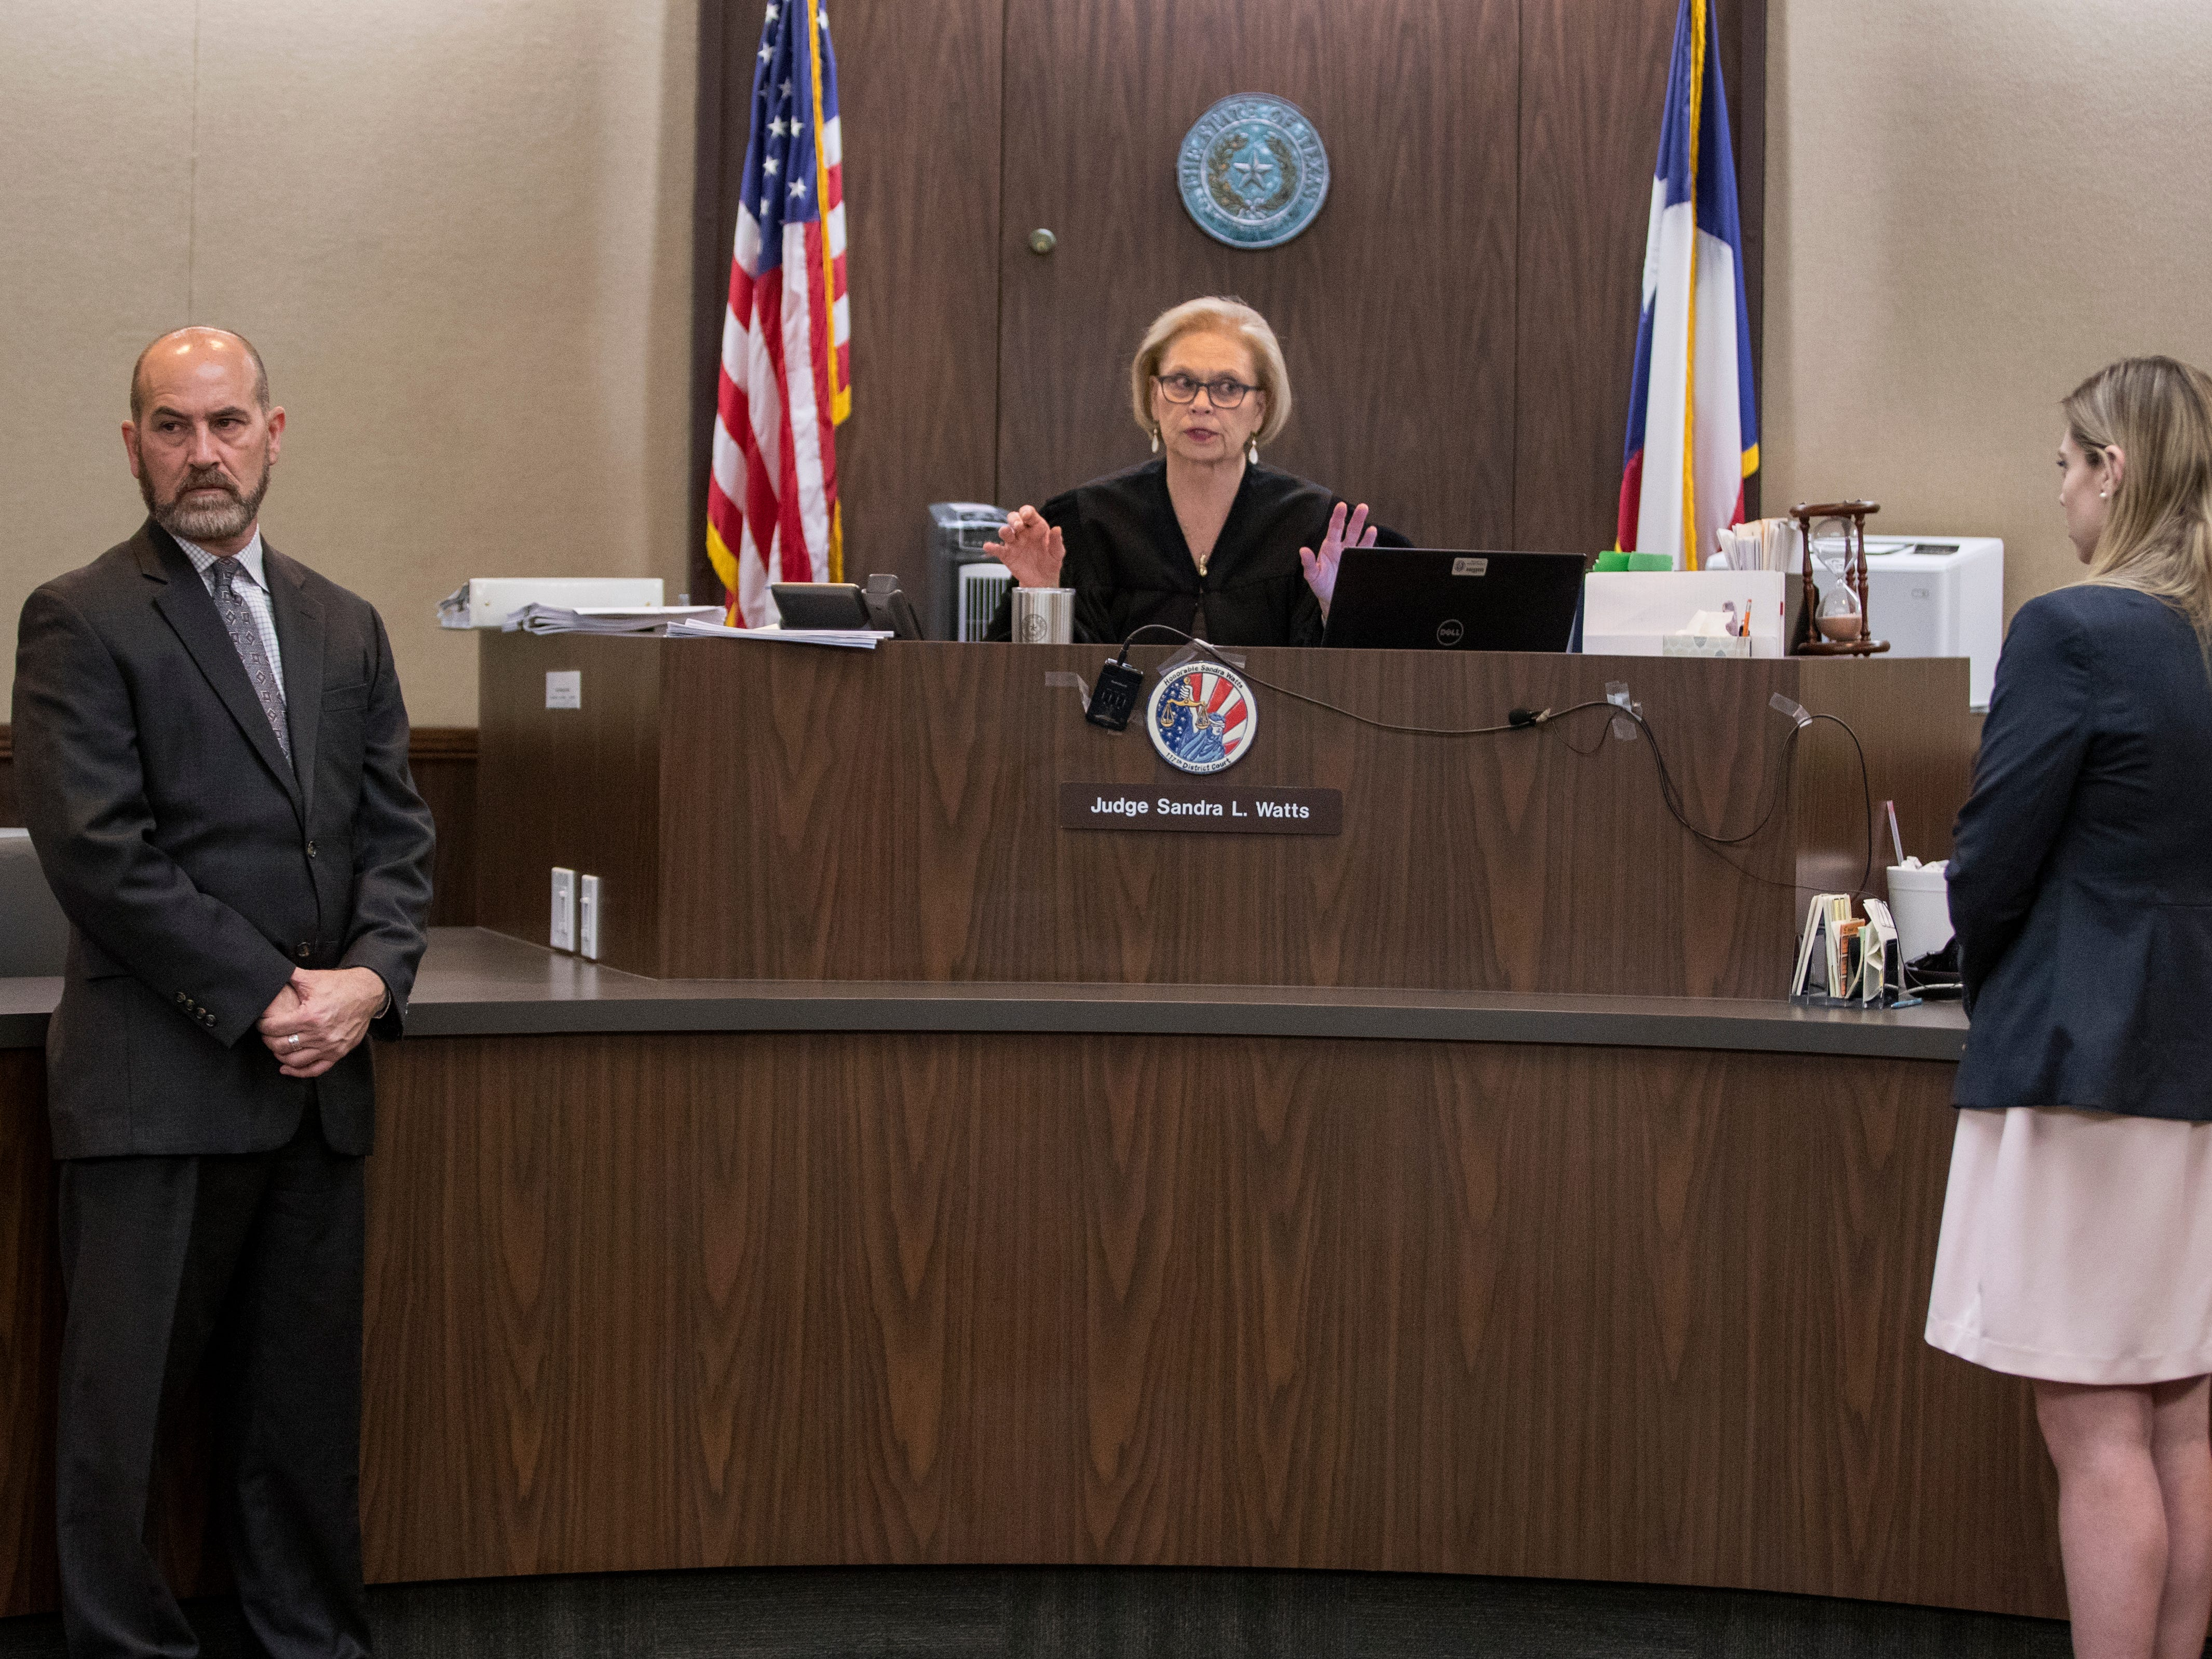 Judge Sandra Watts, 117th District Court, instructs anyone testifying to leave the courtroom before opening statements begin in the trial of Elton Wayne Holmes on Tuesday, January 9, 2018. Holmes is charged with accident involving death, accident involving serious bodily injury, aggravated assault causing serious bodily injury and manslaughter in an alleged hit-and-run that left Rai-ane Garza, a King High School student dead.